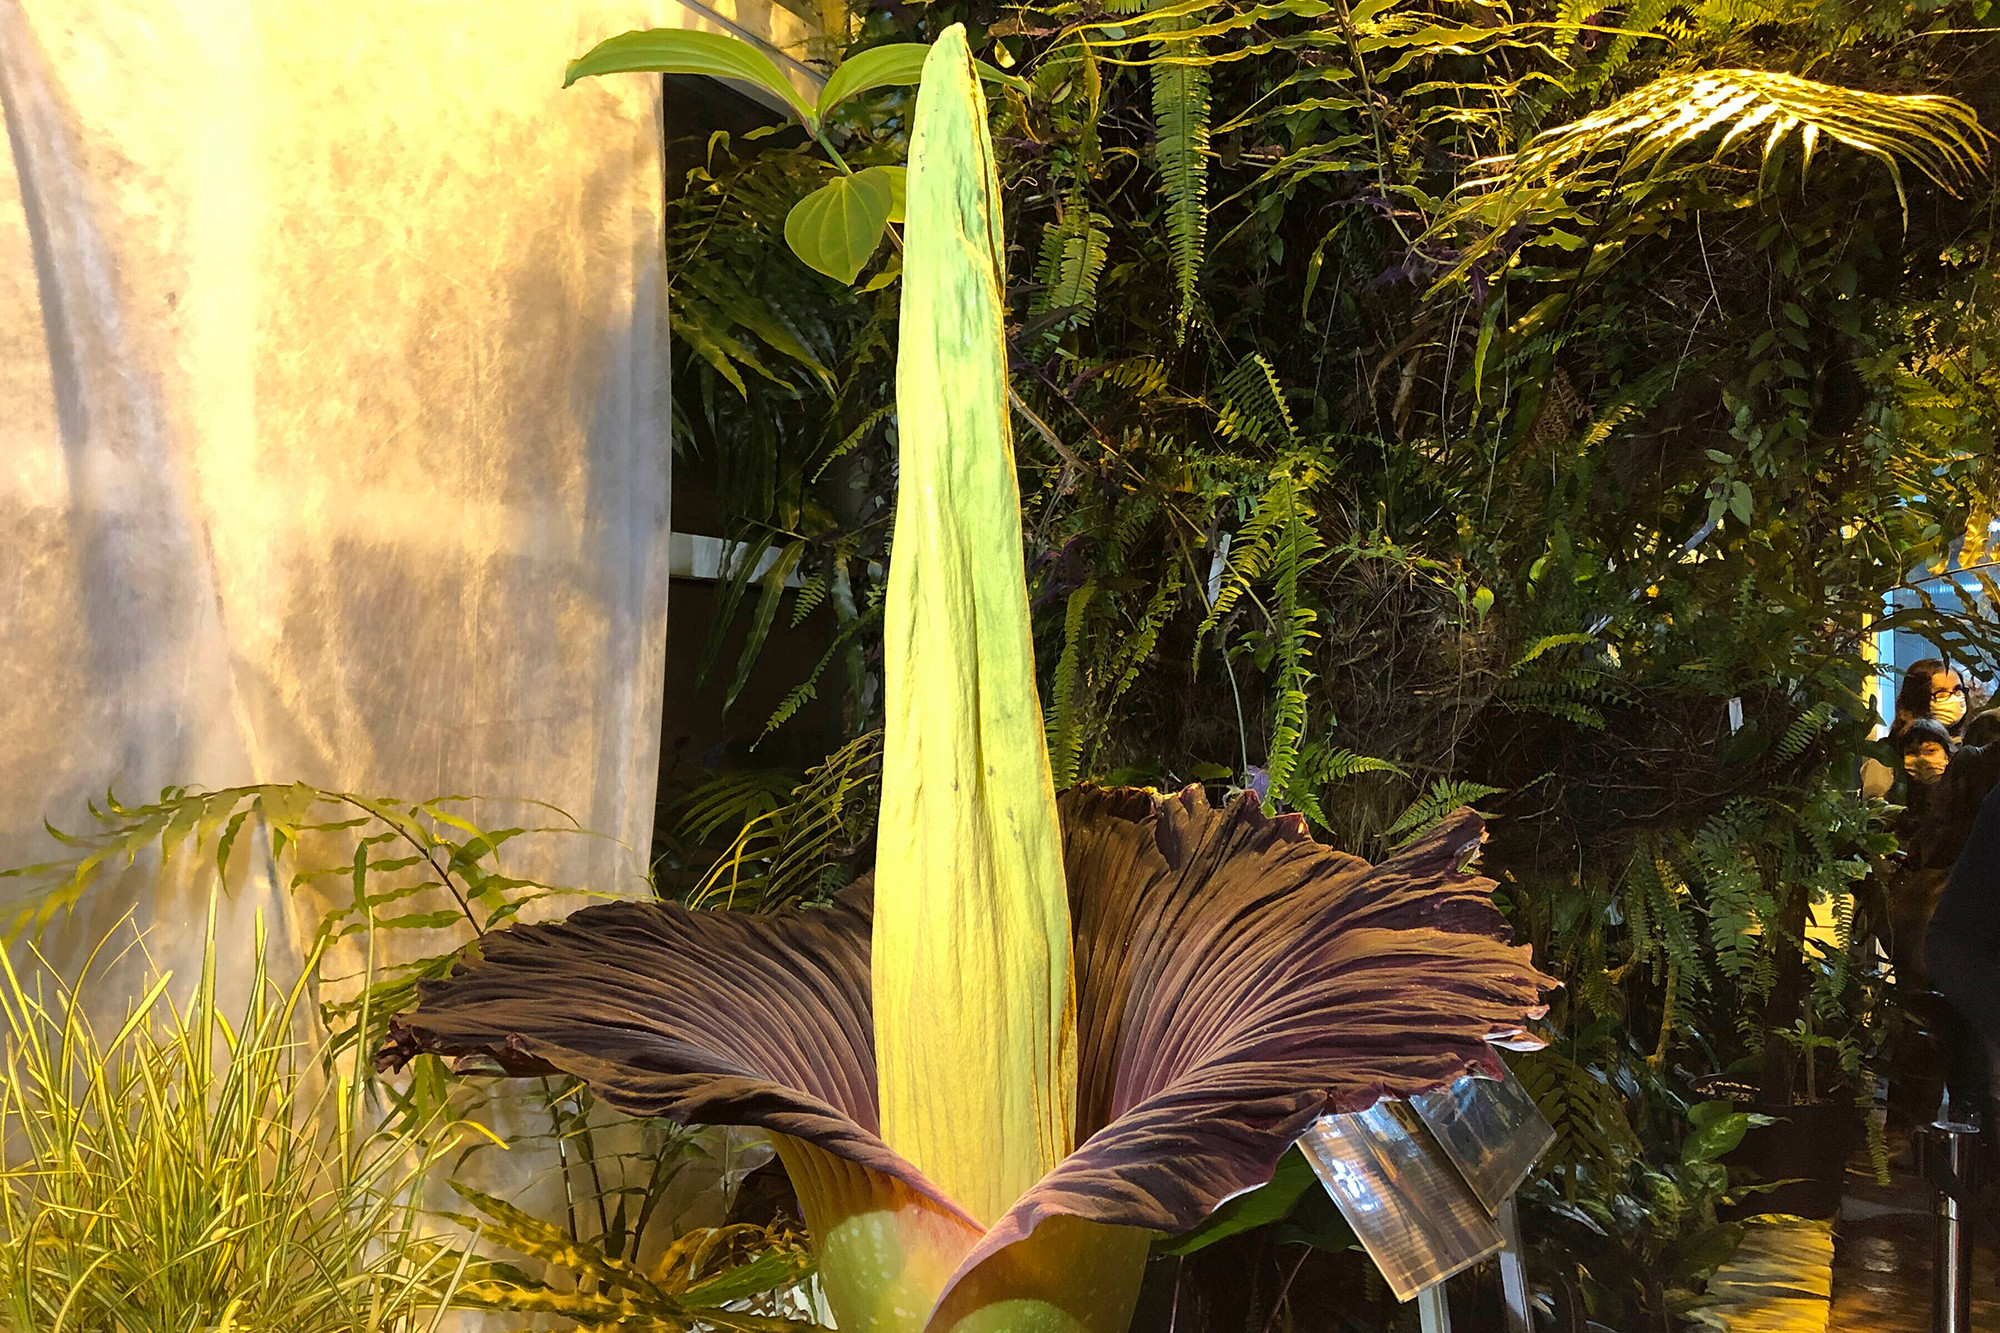 The endangered Sumatran Titan arum, or the corpse flower, at the rare moment of bloom for just a few hours, and emitting rotten meat odor, at the Warsaw University Botanical Gardens, in Warsaw, Poland, on Sunday, June 13, 2021.